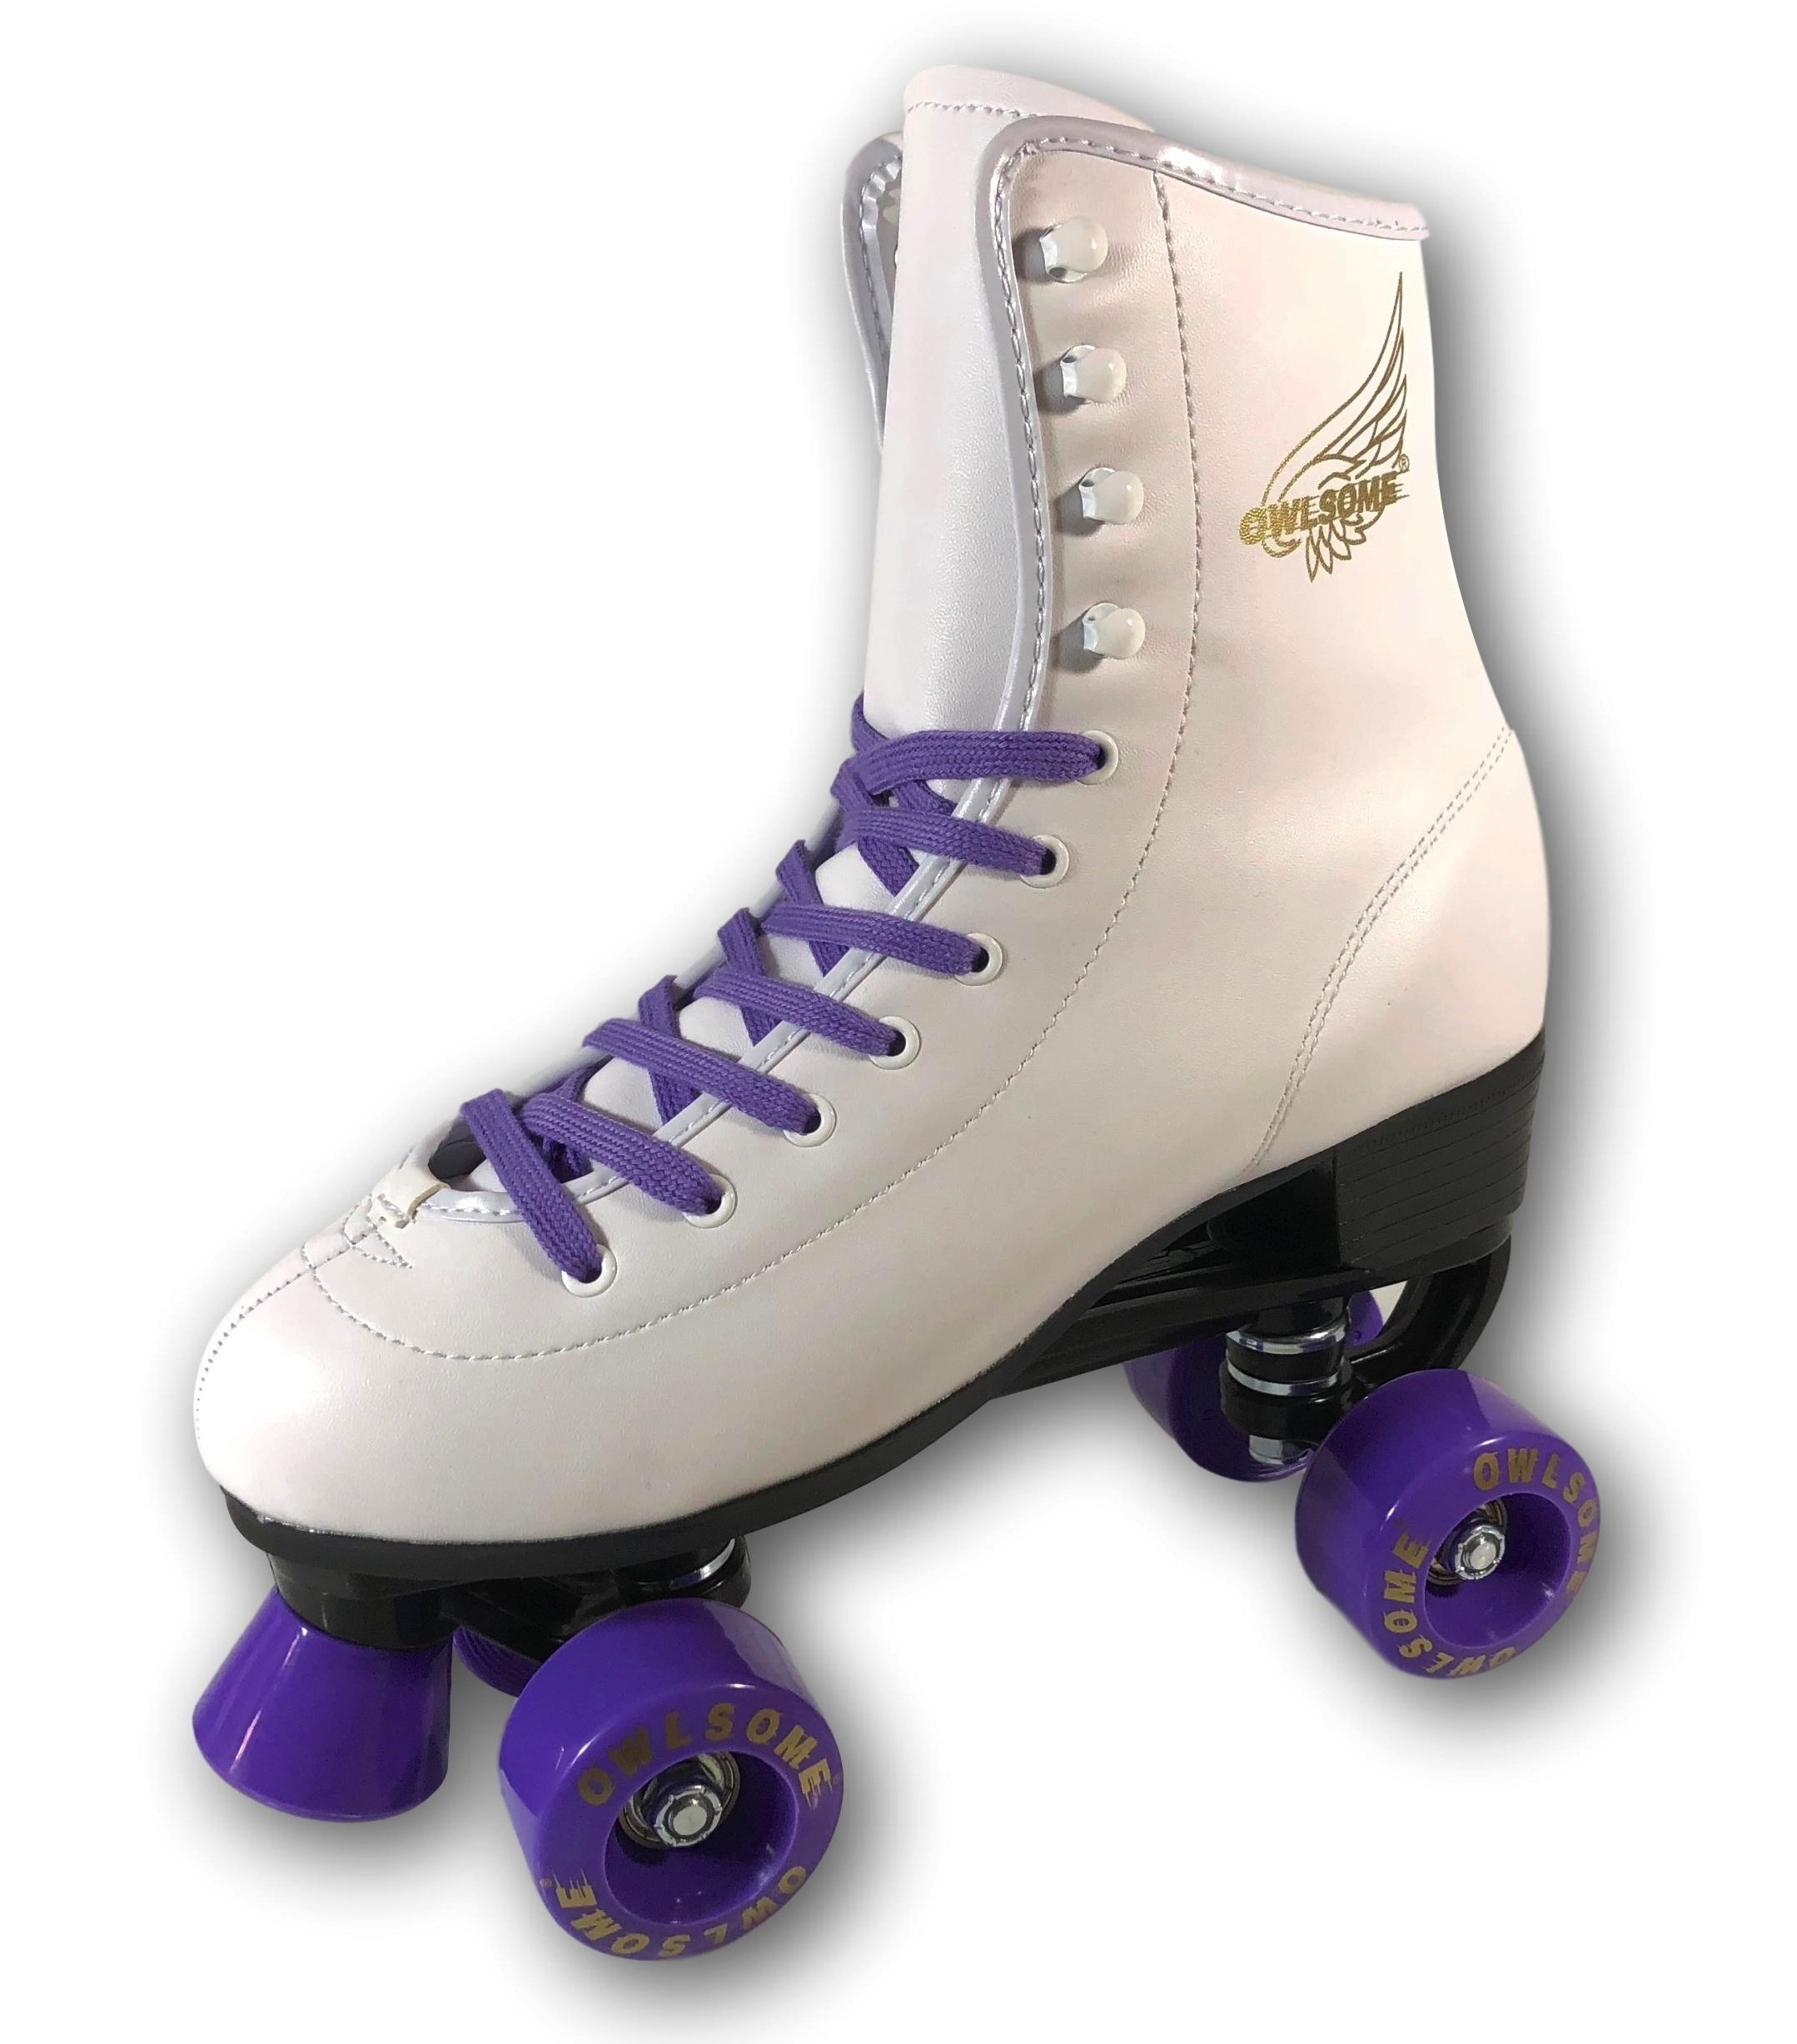 Owlsome Classic High Top Boot Style Soft Faux Leather Roller Skate For Adult & Youth (White/Purple, 8 (10.43''/26.7cm))